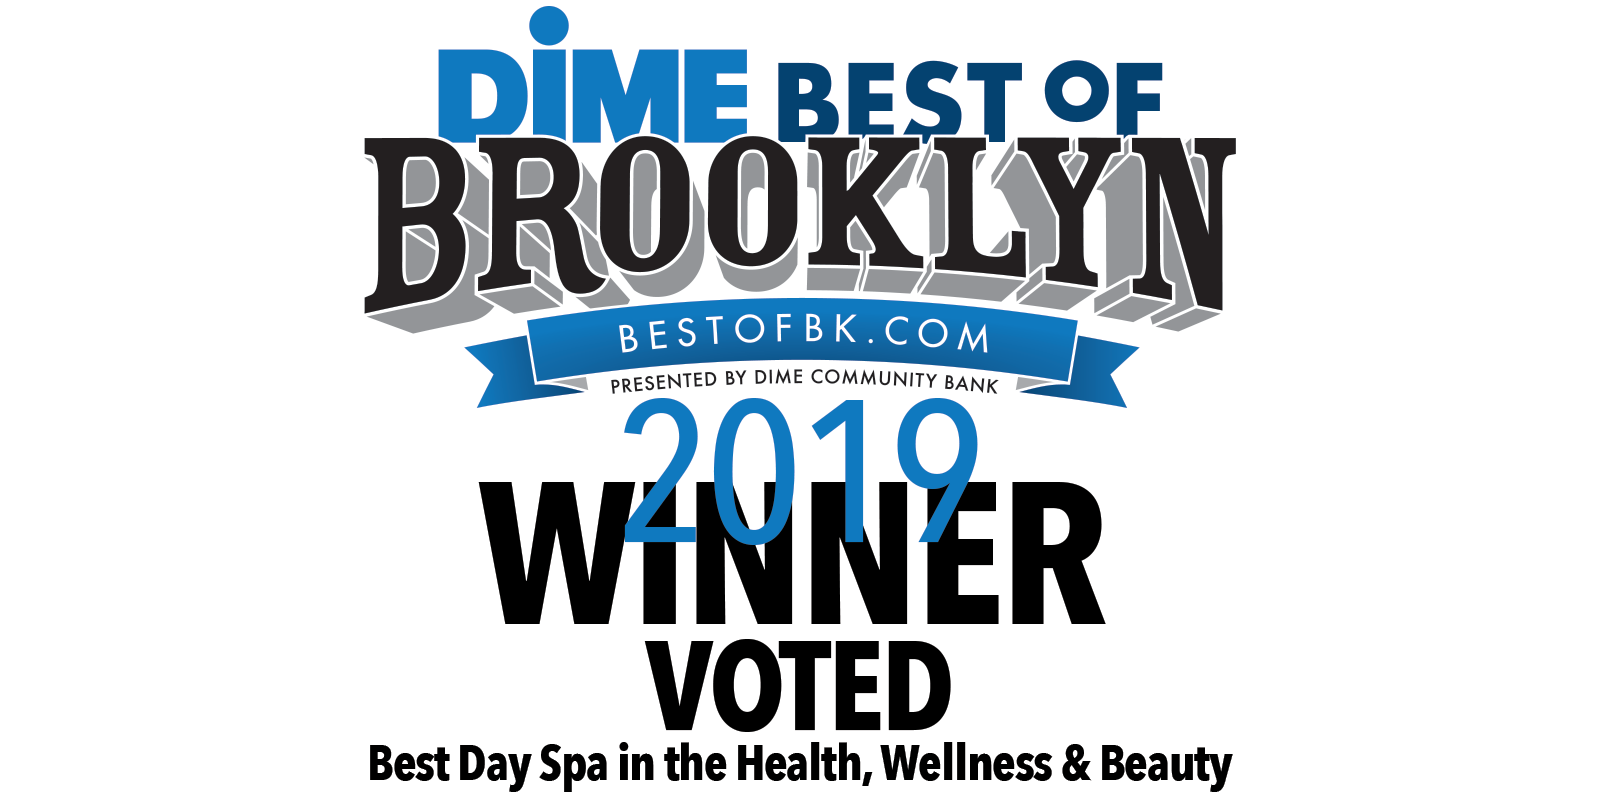 The Green Spa & Wellness Center - Top Rated Local Day Spa Near Me In